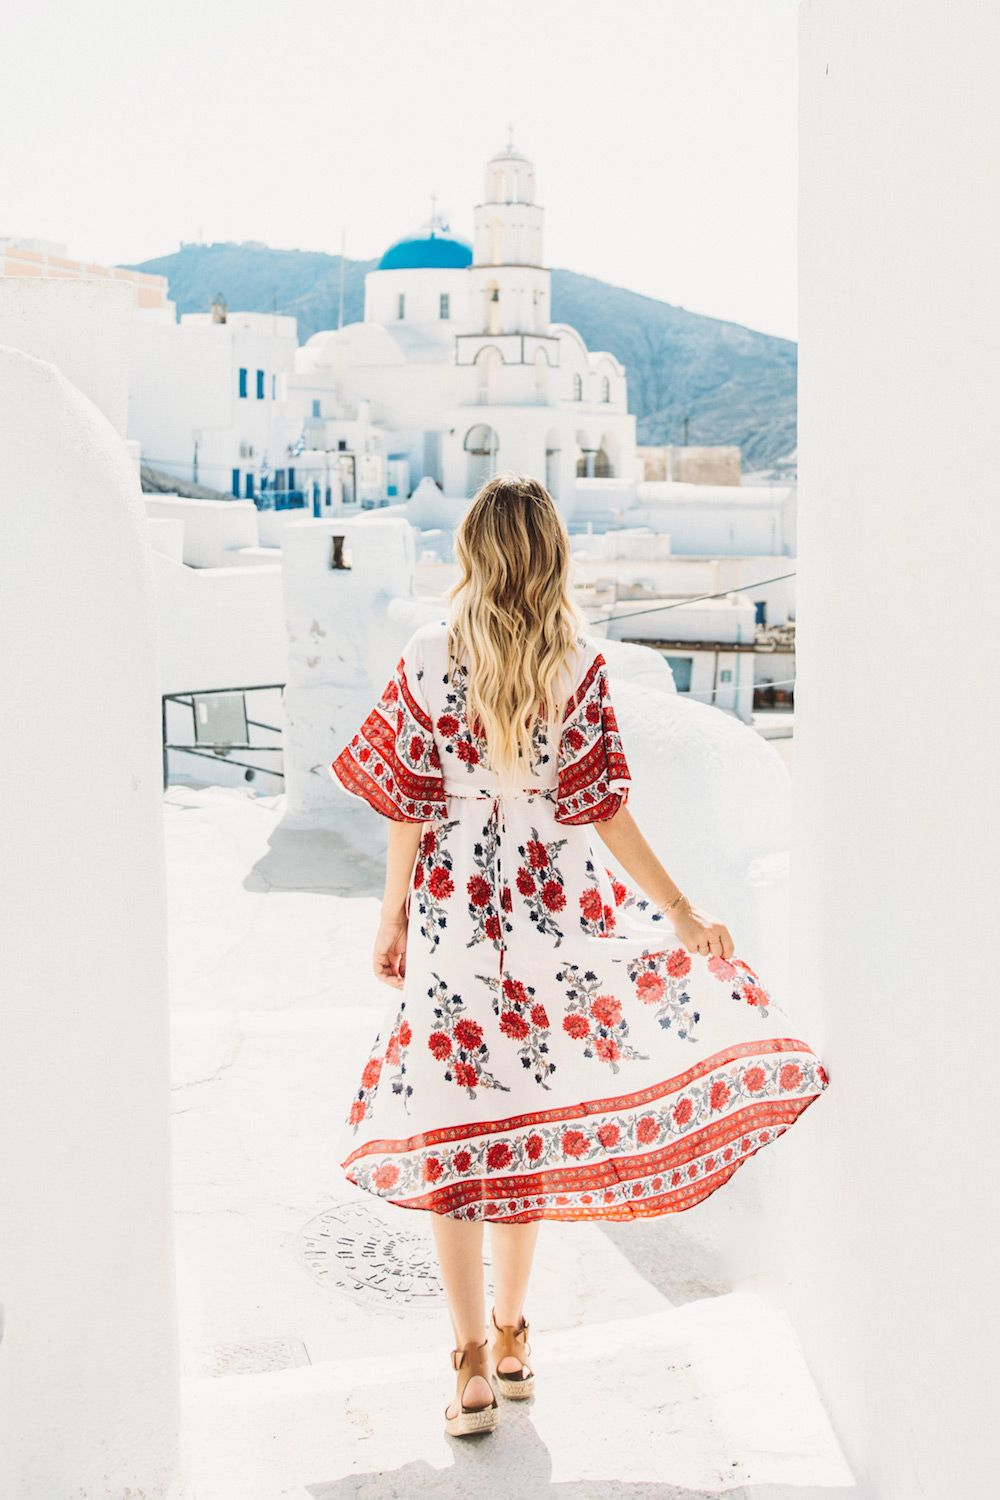 e9ca549464f2 Dash of Darling shares her travels to Santorini, Greece with Royal  Caribbean Cruises while wearing a Reverse dress from Revolve Clothing.